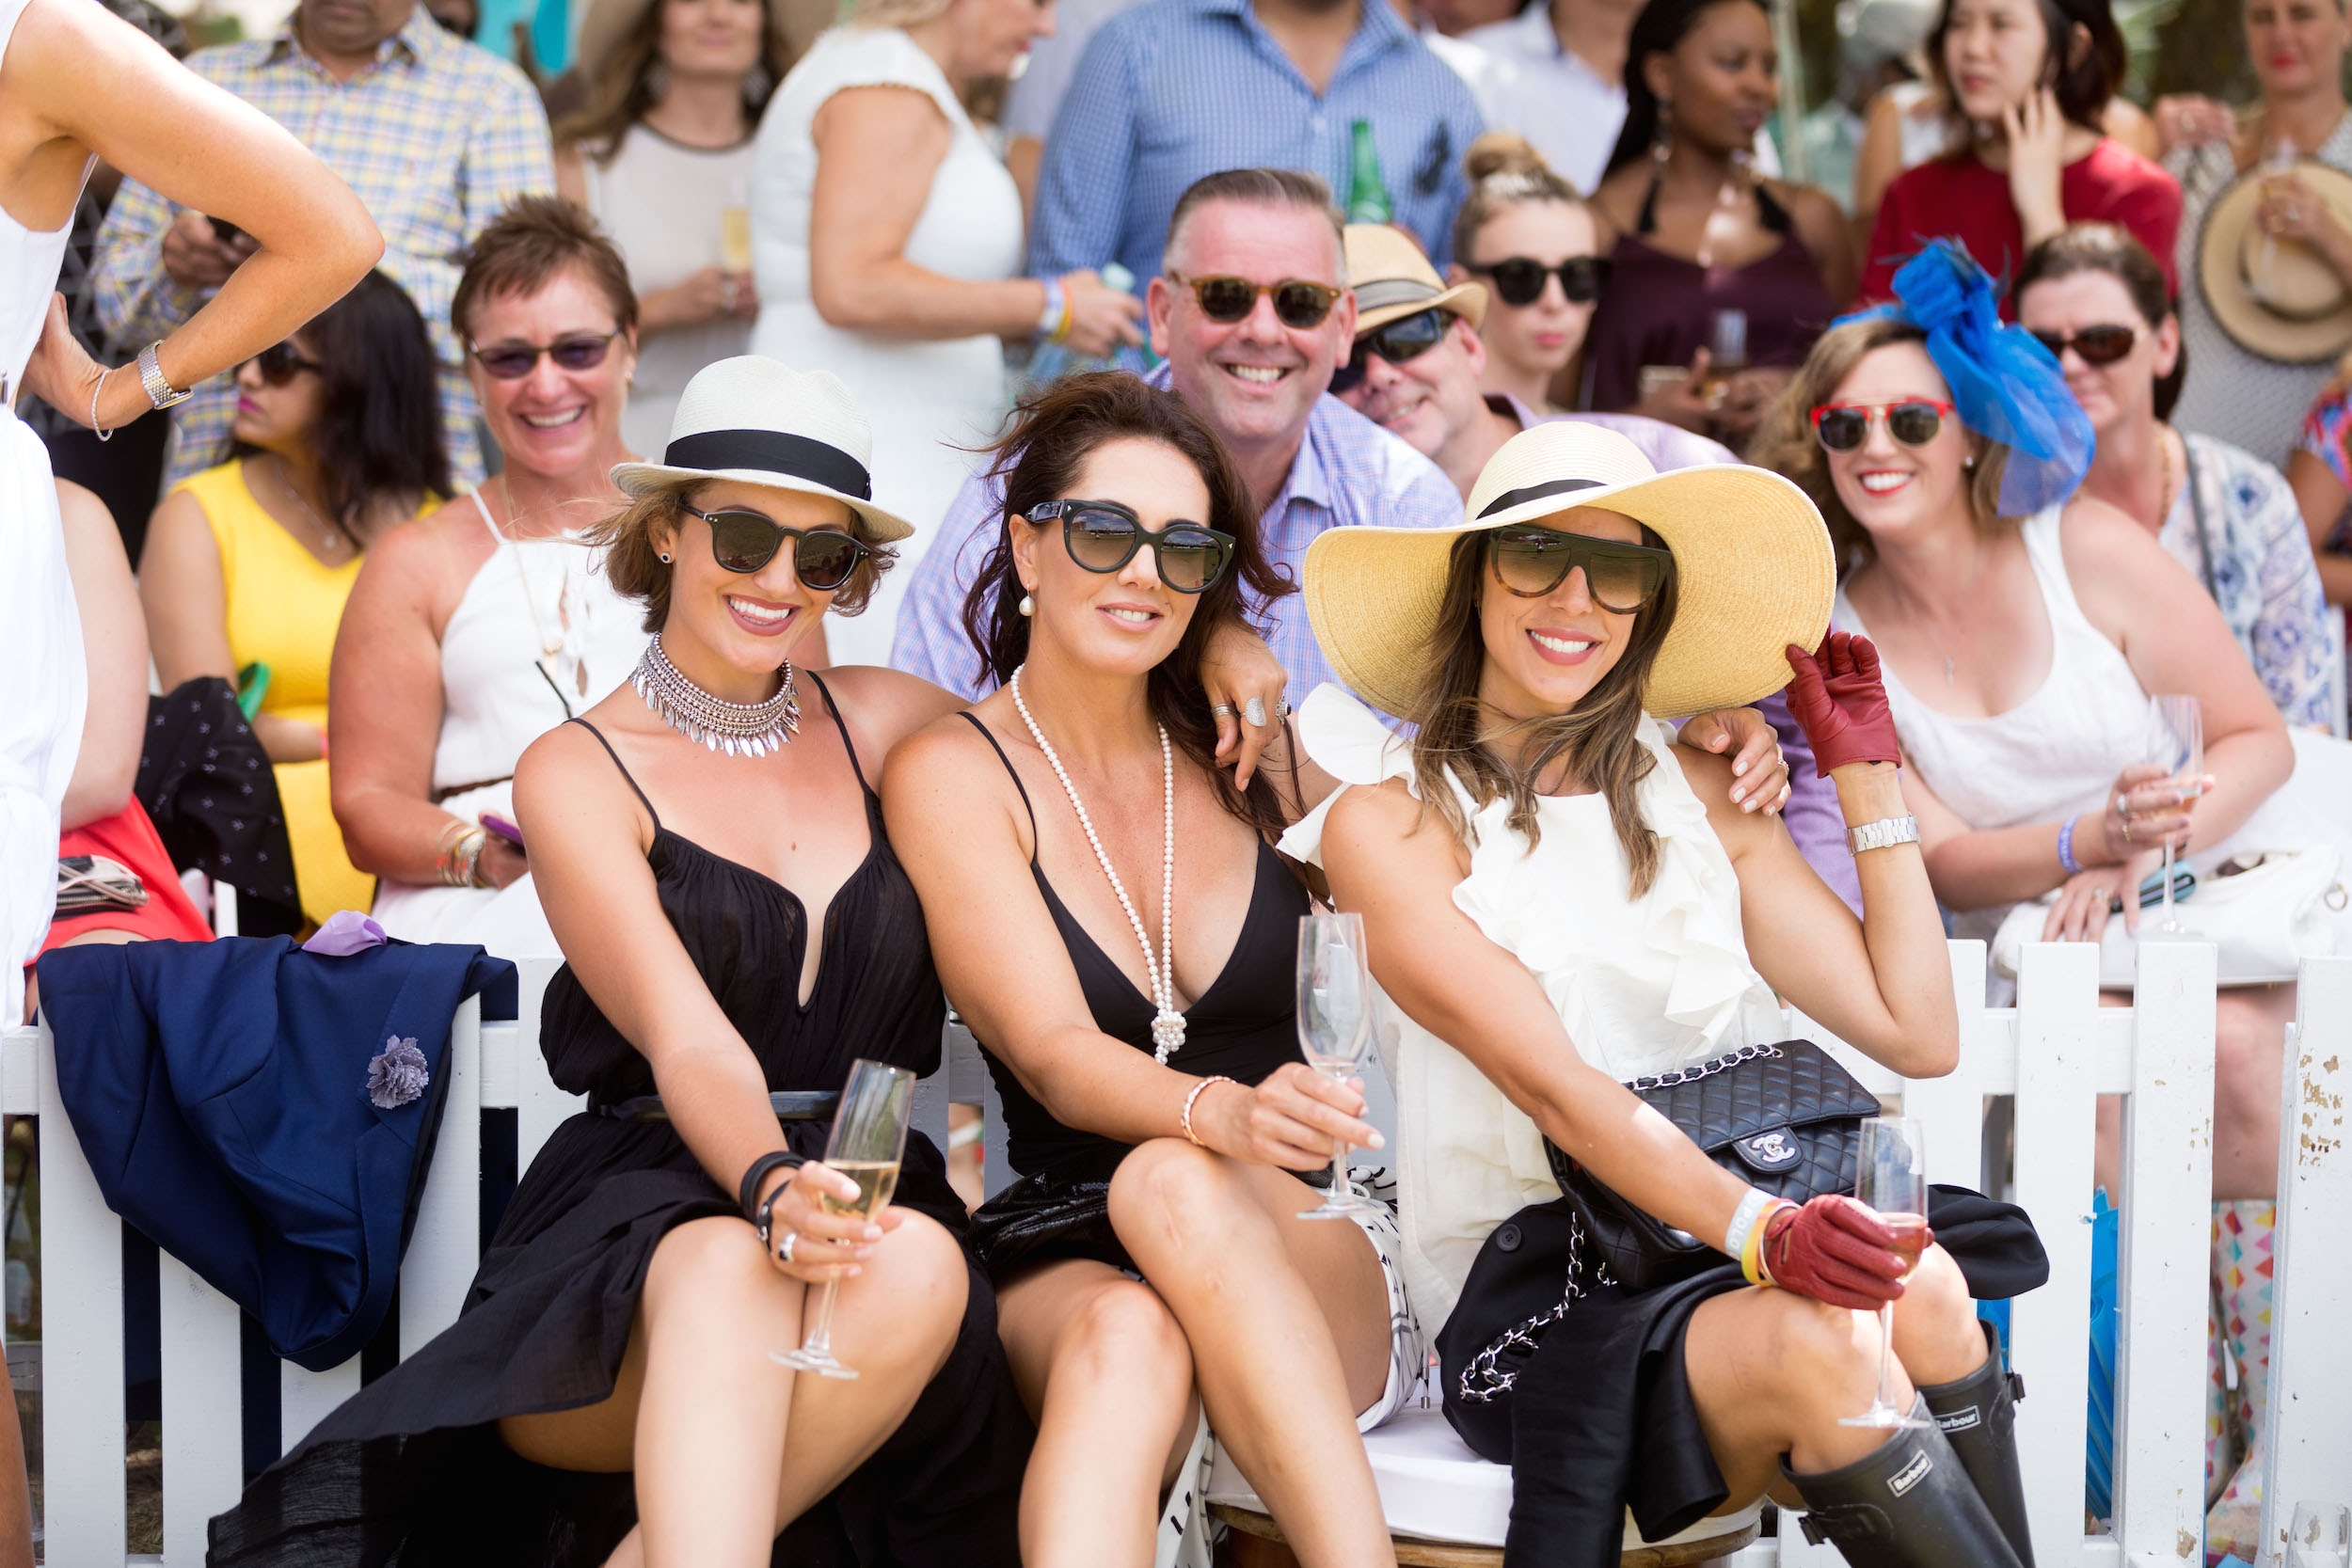 Three glamorous women in sunglasses sitting in front of a white fence and a crowd of people